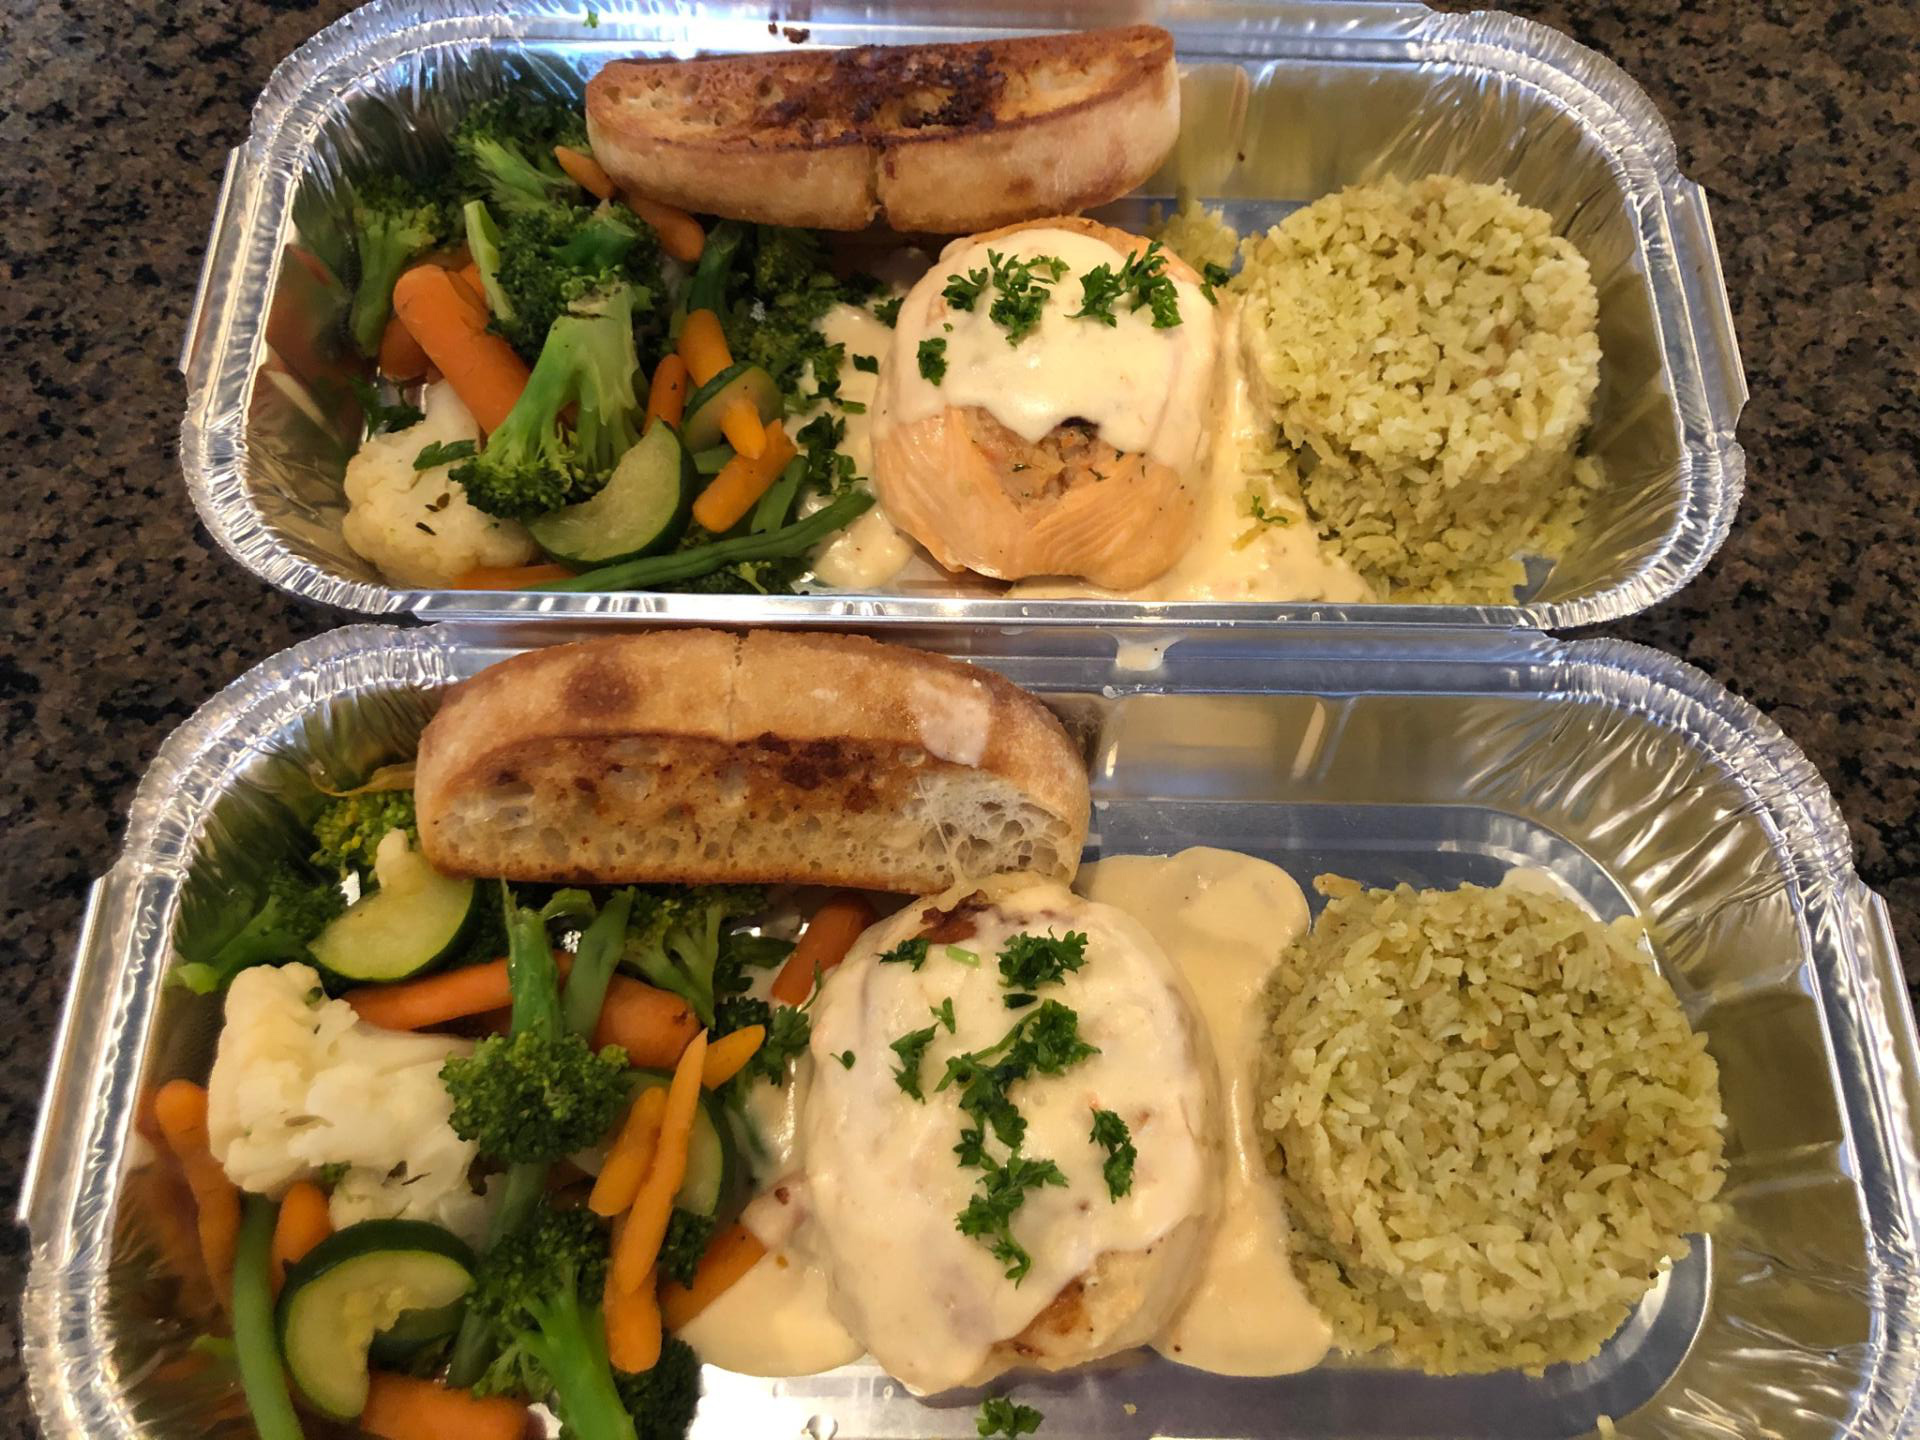 Stuffed Salmon or Sole with creamy lobster sauce